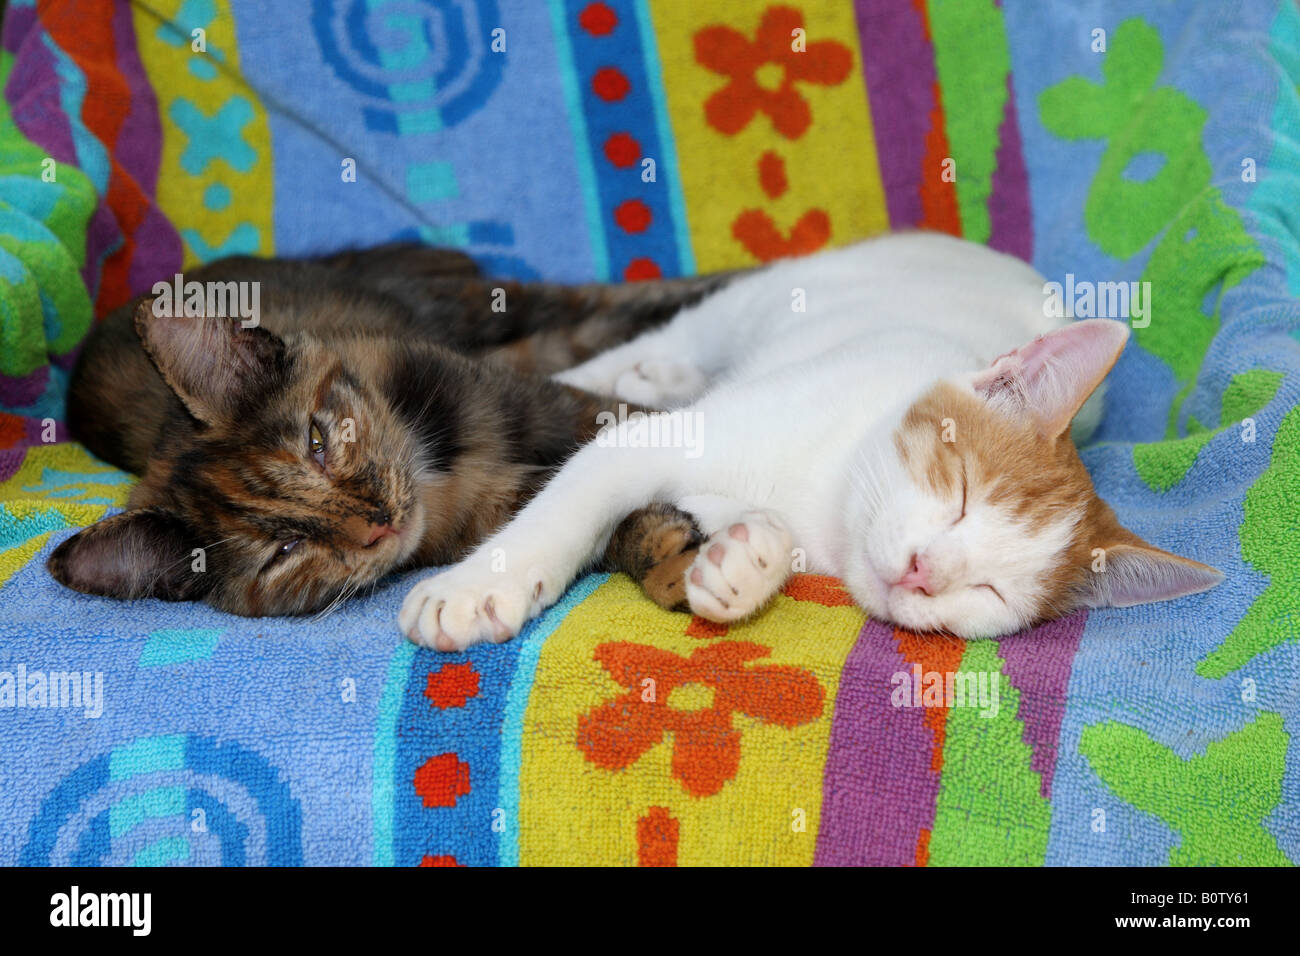 two domestic cats - sleeping - Stock Image